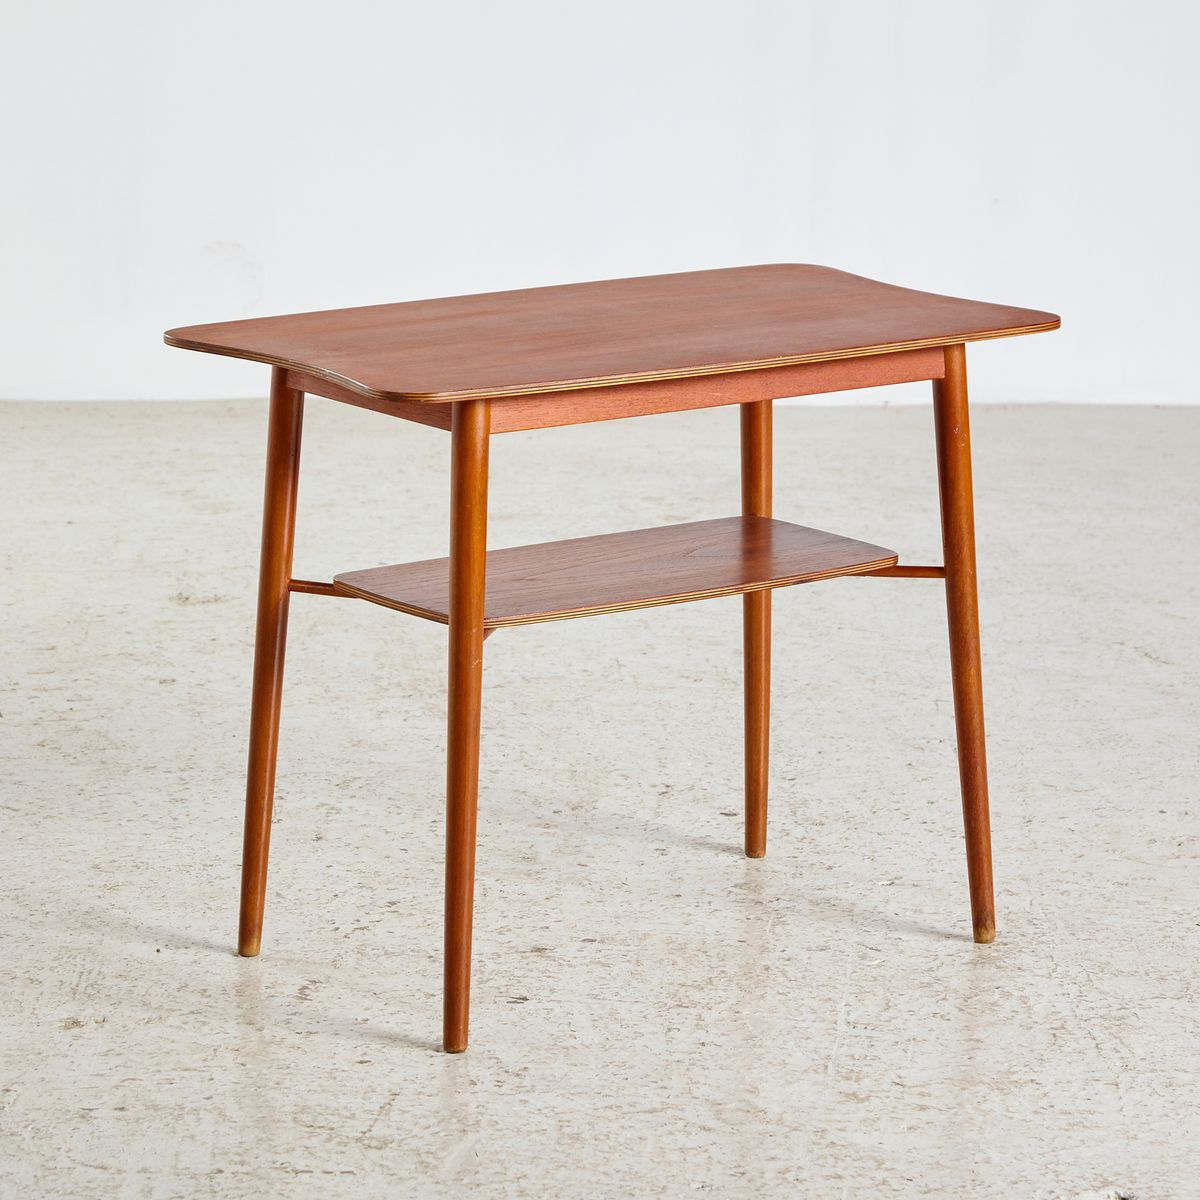 Danish Teak Coffee Table With Curved Top, 1960s